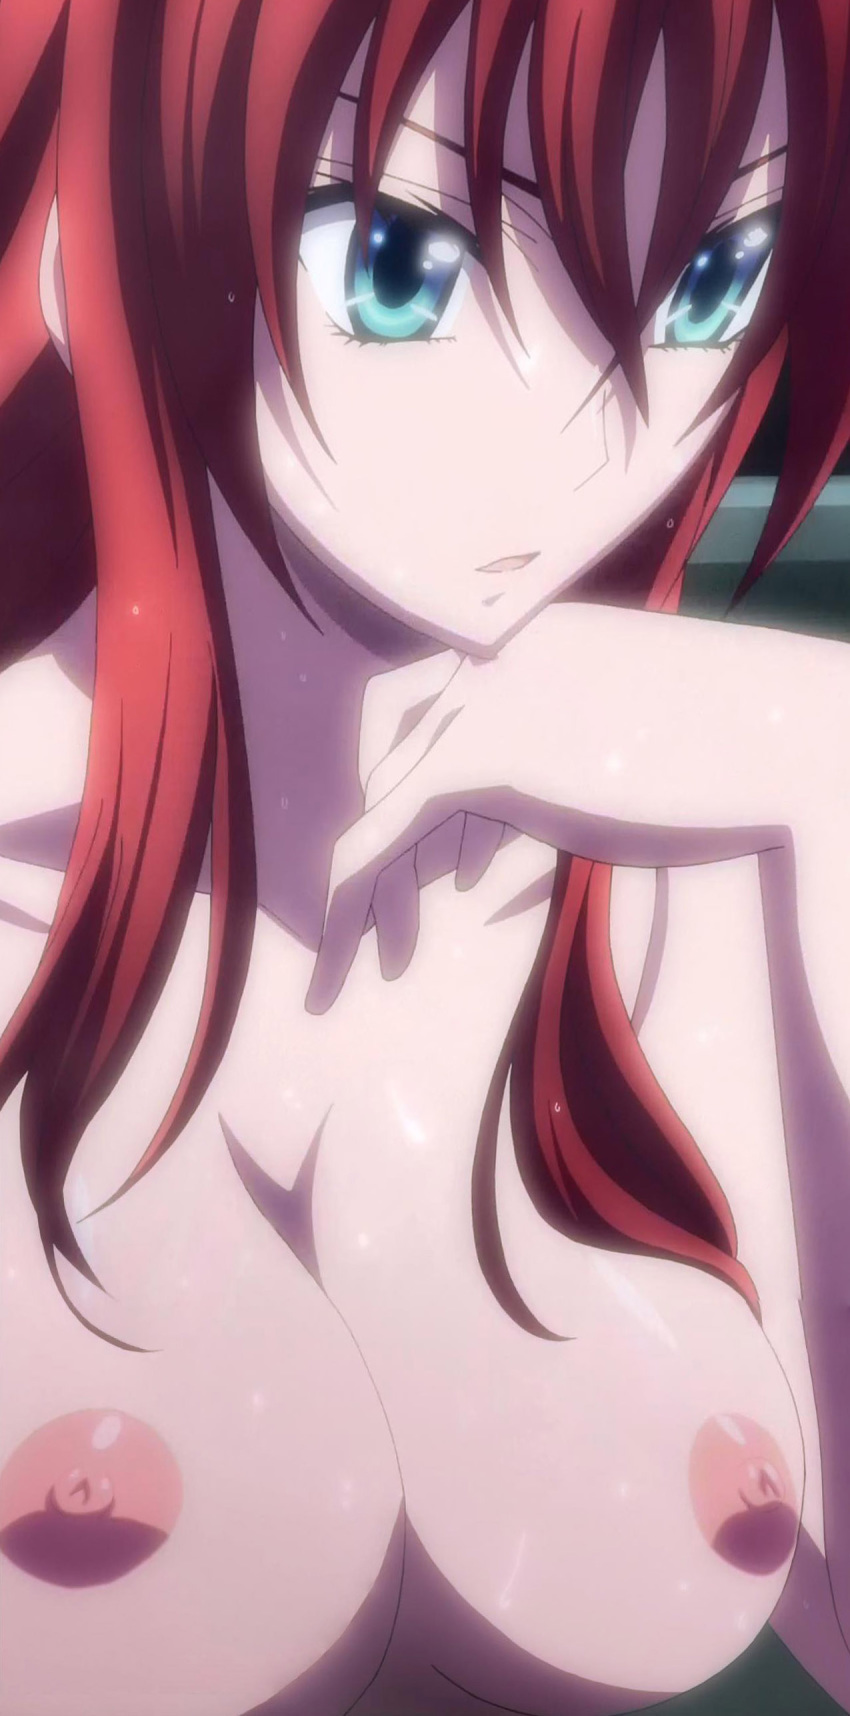 dxd rias gremory nude highschool Red lantern the crimson divine